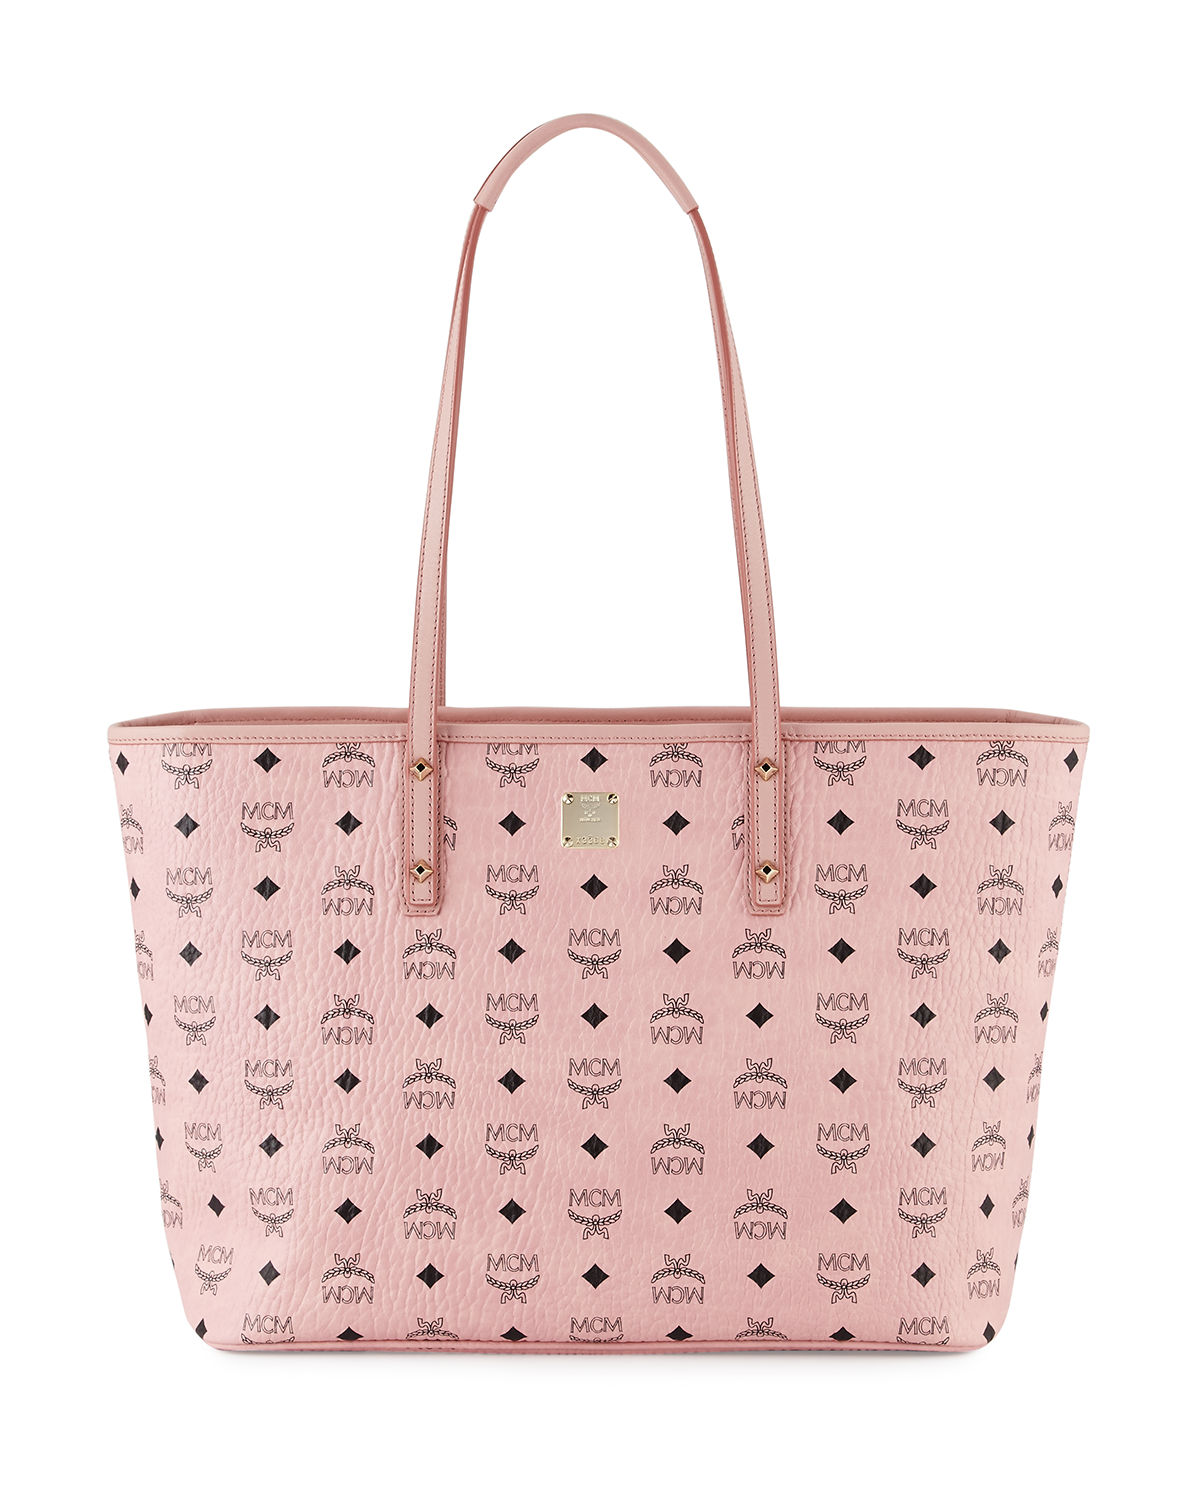 28d66a261 Mcm Anya Soft Pink Top Zip Medium Shopping Bag | ModeSens